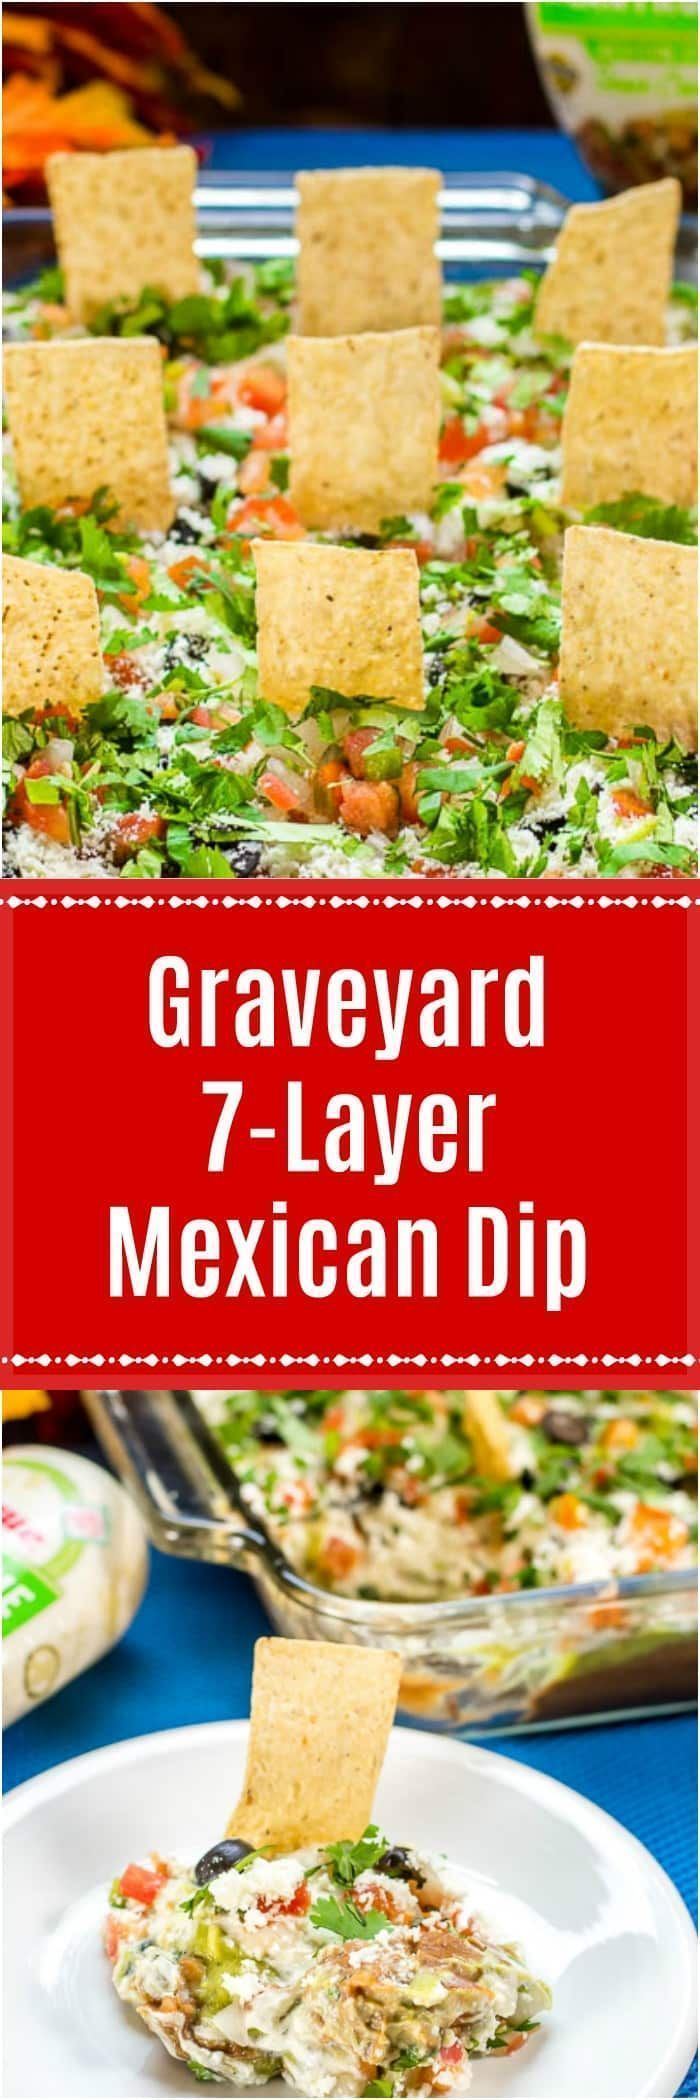 Graveyard 7-Layer Mexican Dip turns a traditional 7-Layer Dip into a fun, Hallow... - #7layerdip Graveyard 7-Layer Mexican Dip turns a traditional 7-Layer Dip into a fun, Hallow... - #7layerdip Graveyard 7-Layer Mexican Dip turns a traditional 7-Layer Dip into a fun, Hallow... - #7layerdip Graveyard 7-Layer Mexican Dip turns a traditional 7-Layer Dip into a fun, Hallow... - #7layerdip